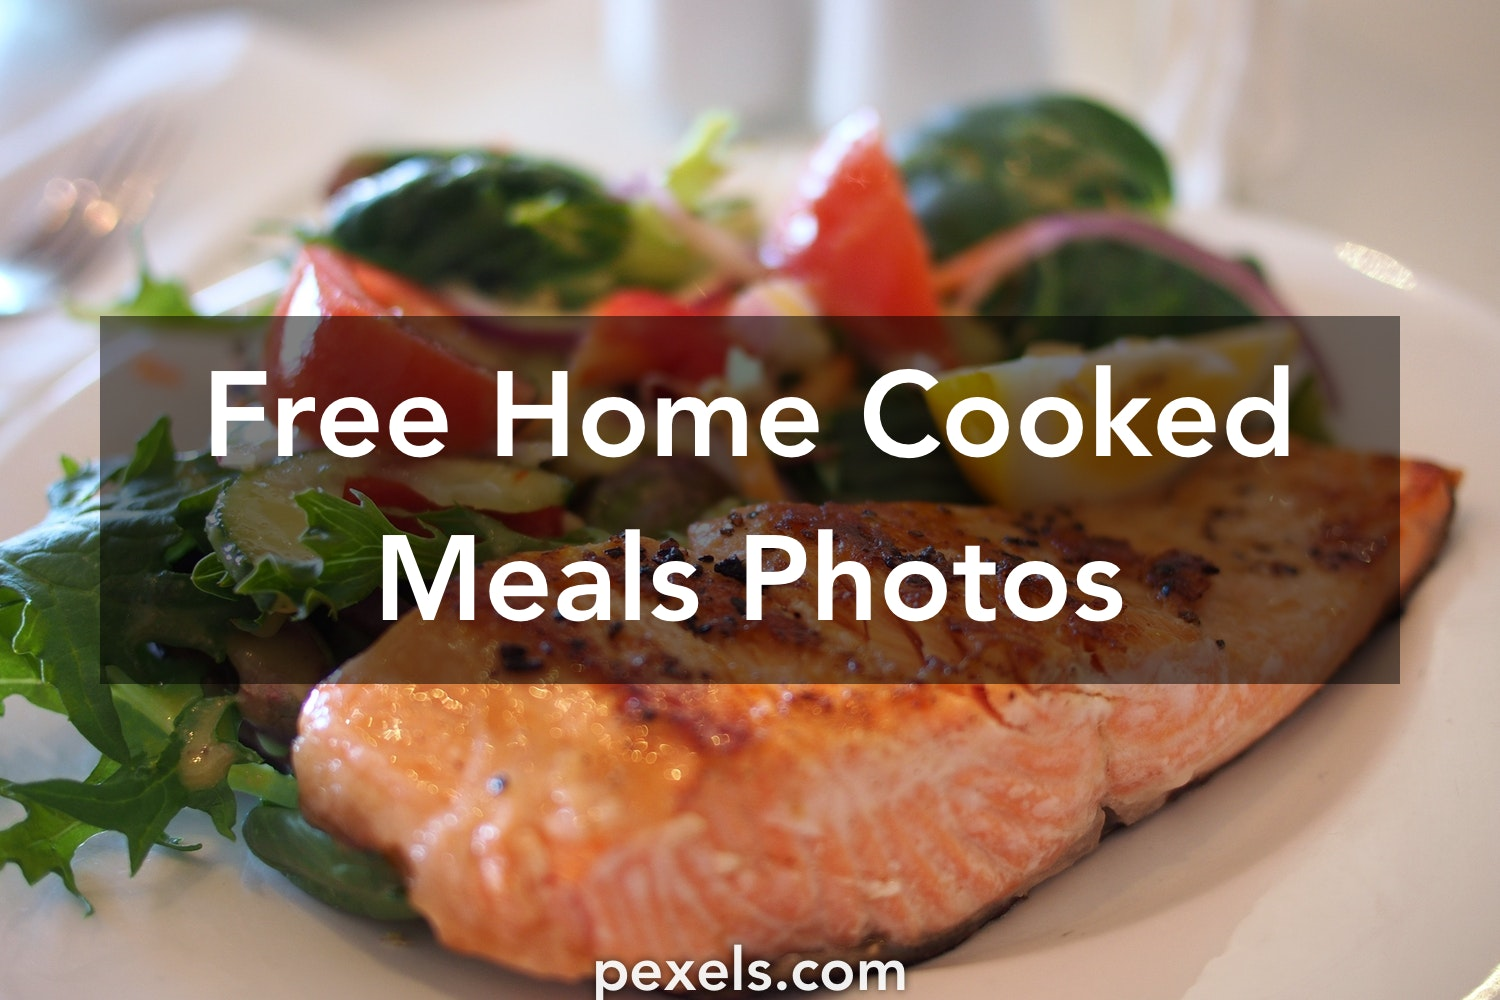 1000+ Beautiful Home Cooked Meals Photos · Pexels · Free Stock Photos